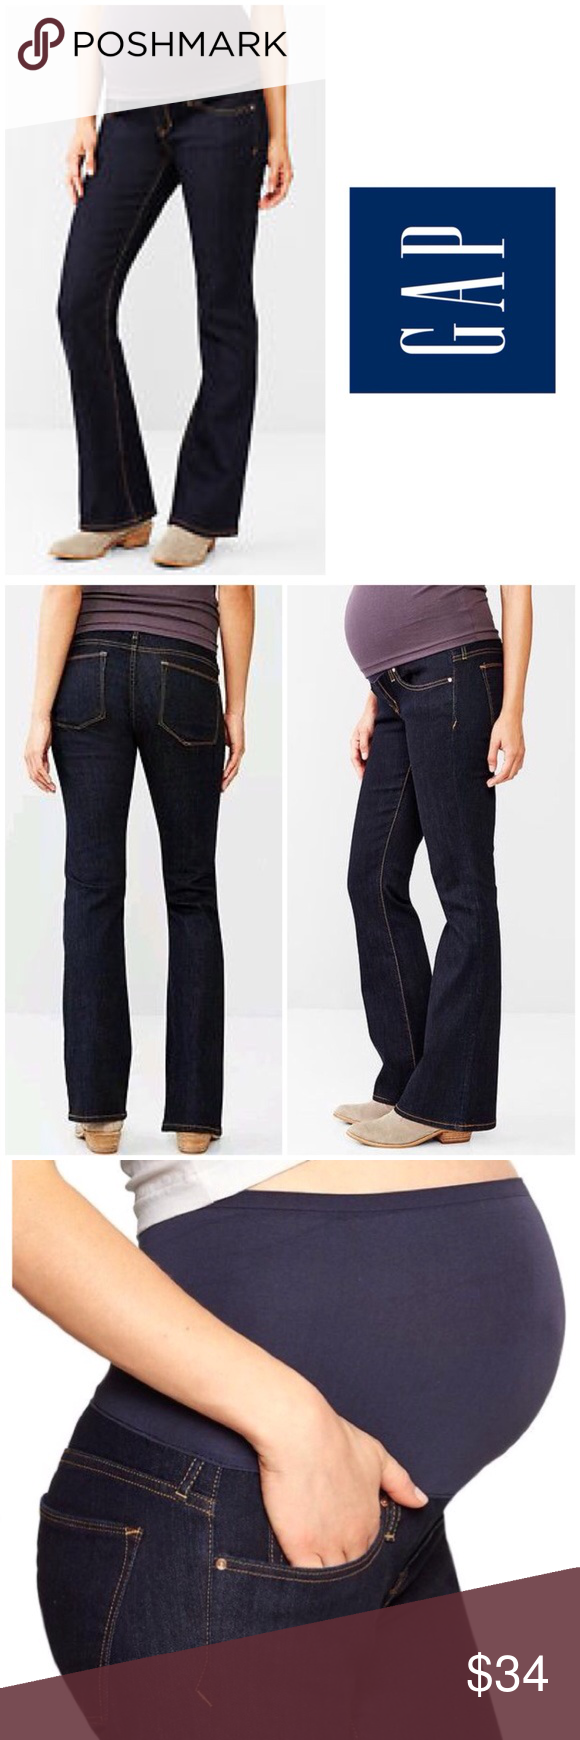 bb7f6d35b223f GAP Full Panel Sexy Bootcut Maternity Jeans Fit & Sizing Choose your  maternity size based on